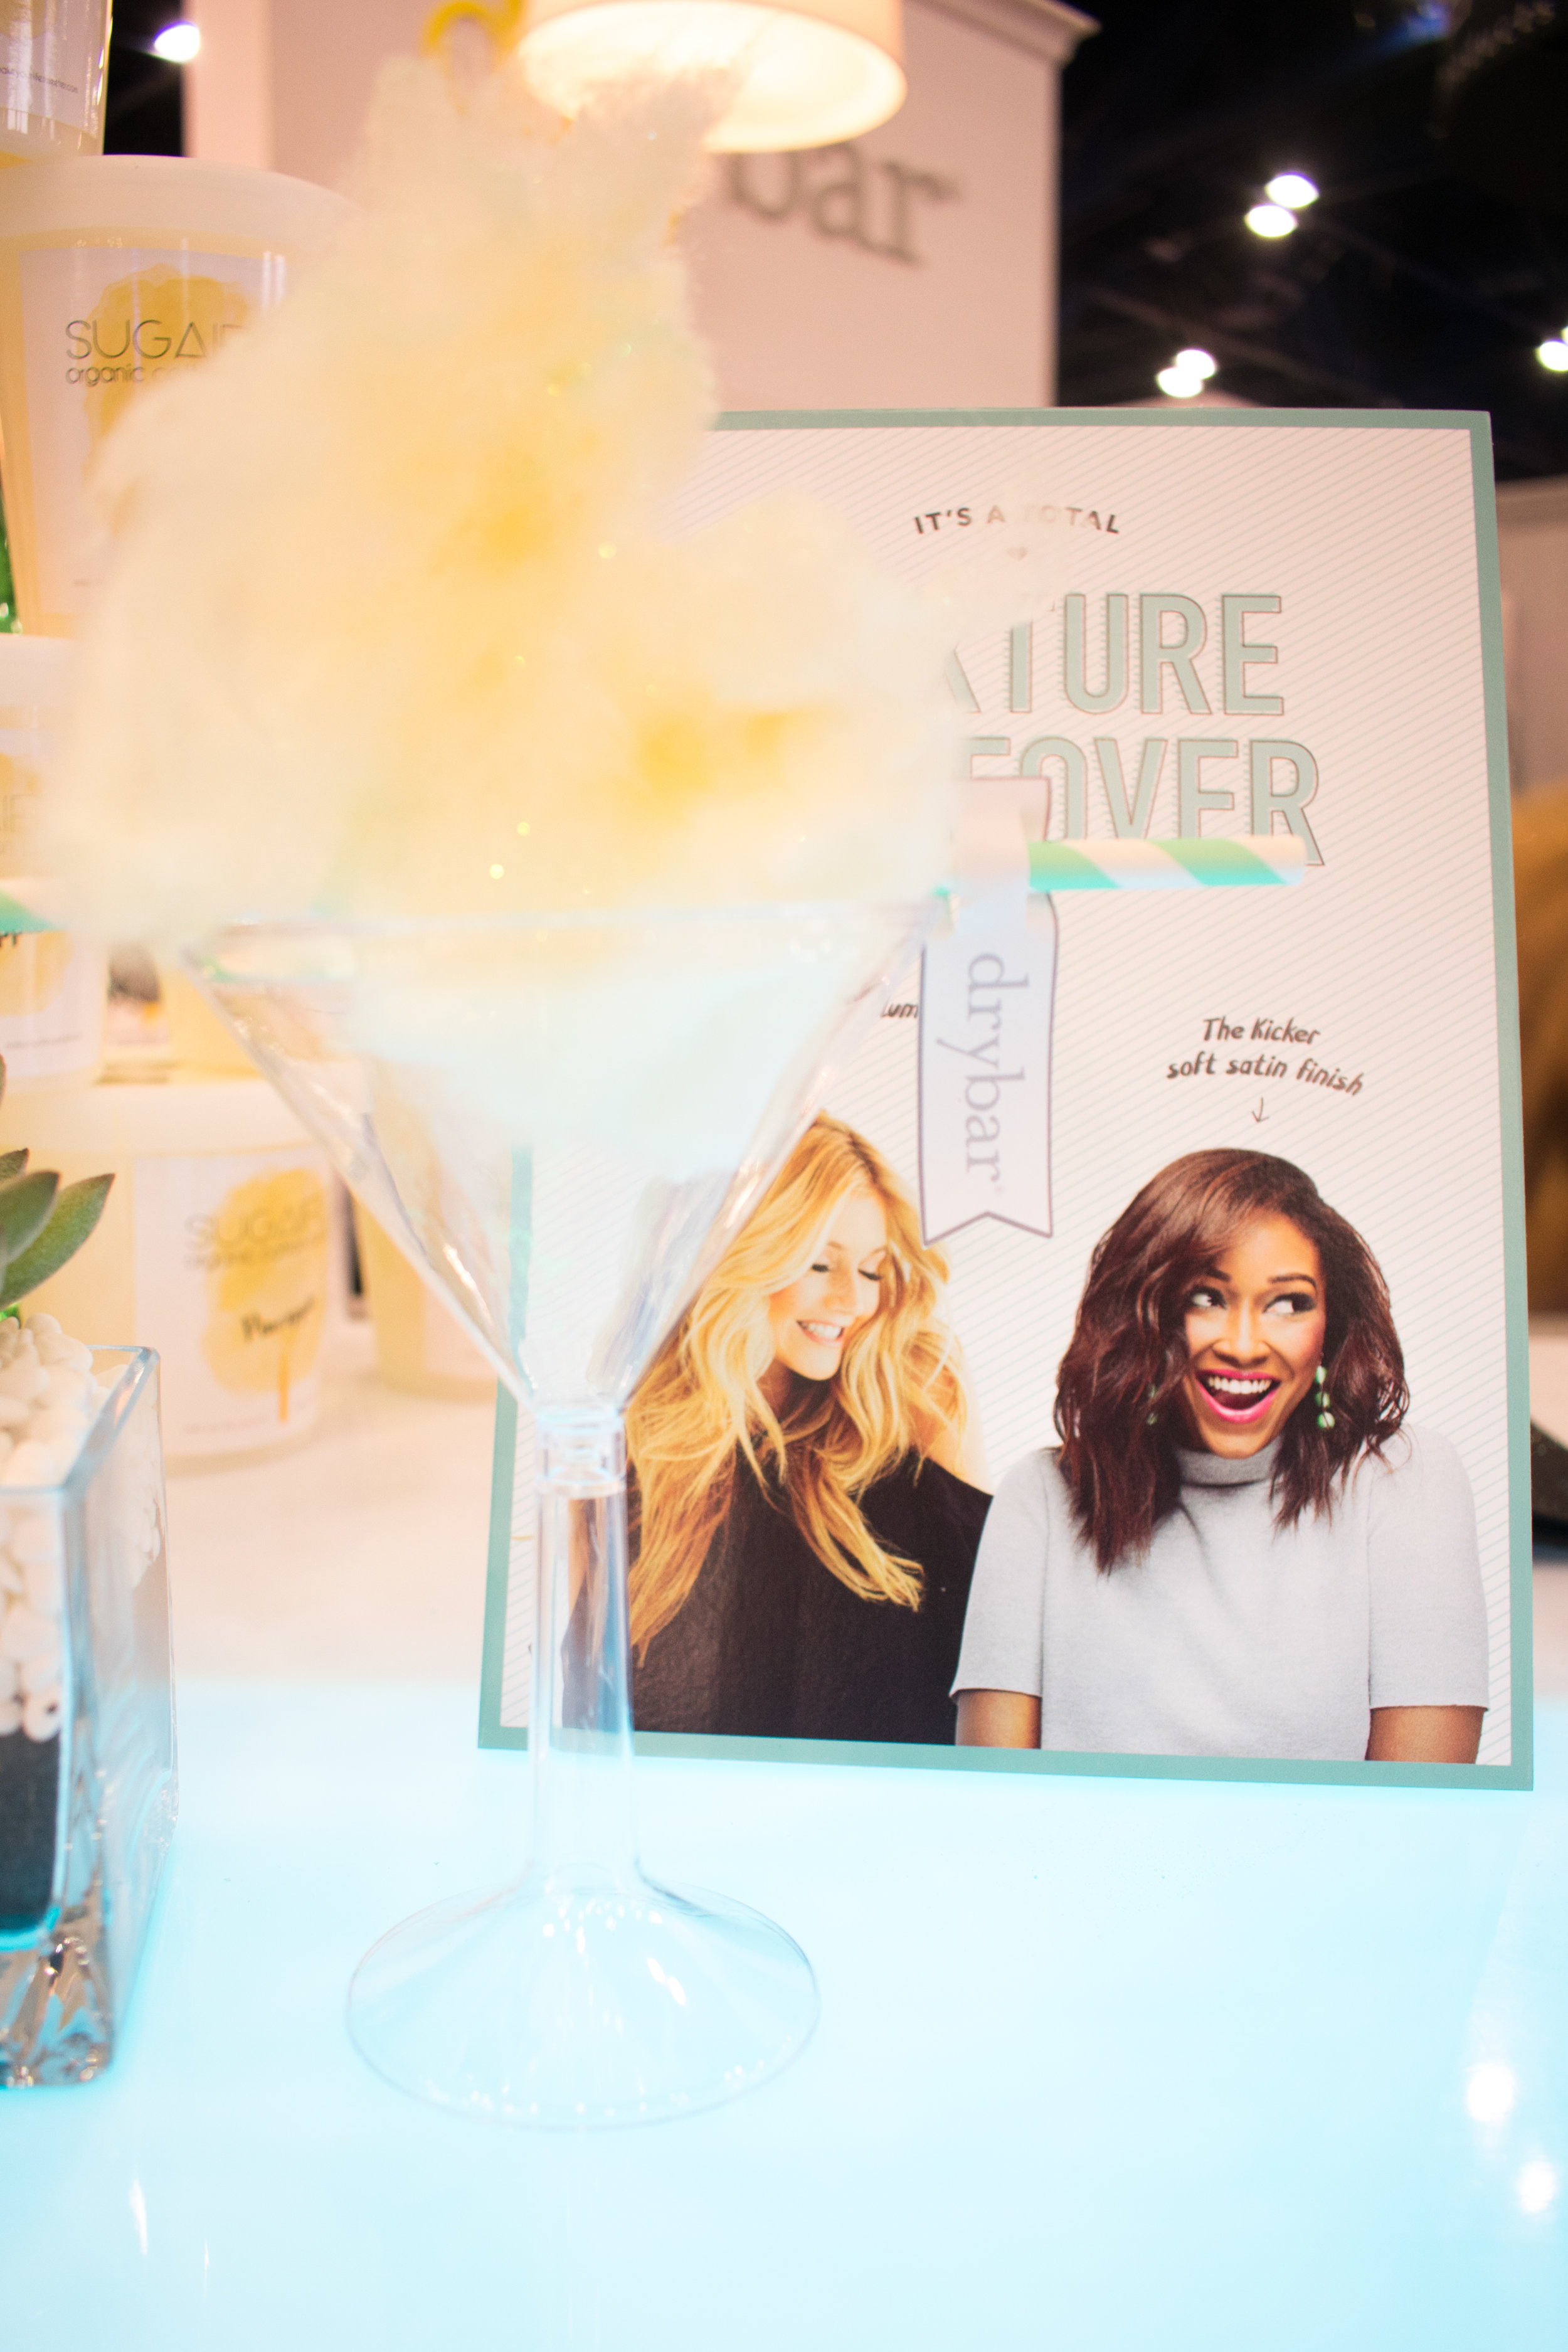 Sugaire Organic Cotton Candy- Drybar Ulta Convention 2018